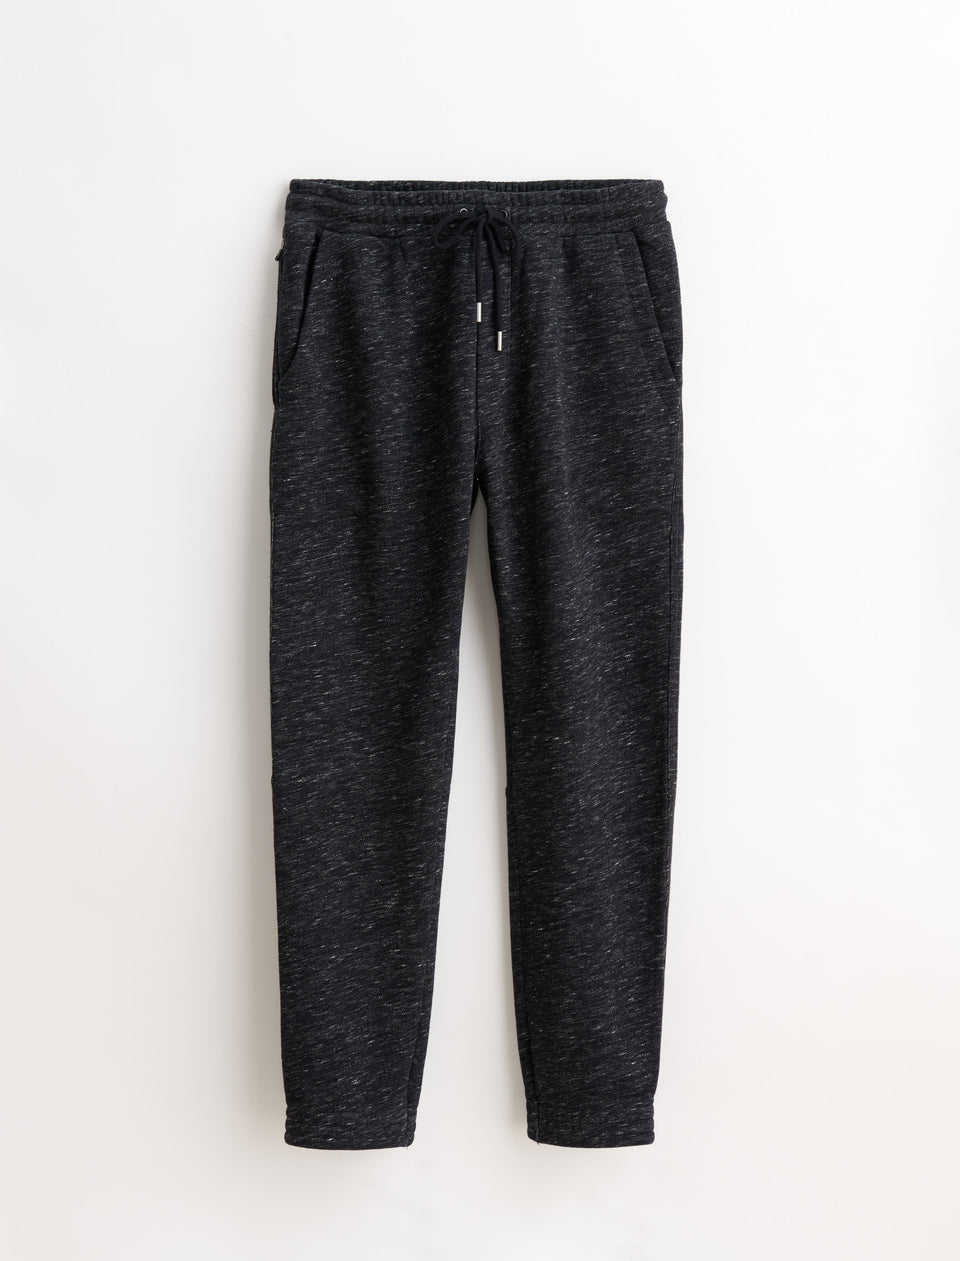 French Terry Heather Sweatpants